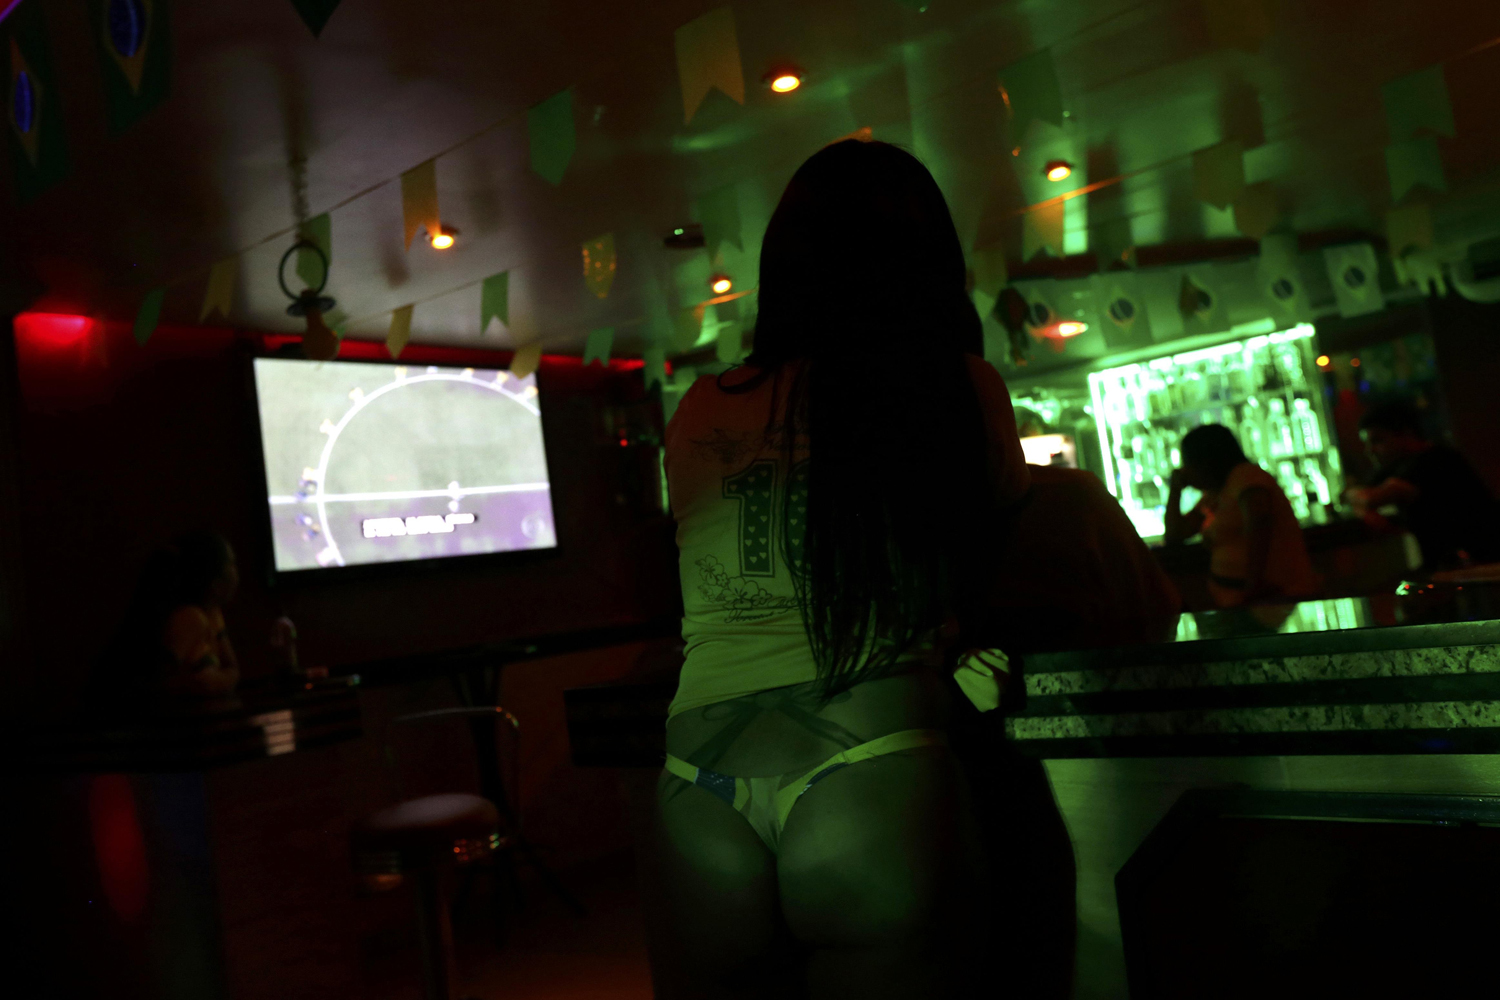 Jun. 12, 2014. A woman watches the 2014 World Cup match between Brazil and Croatia at a night club near the Corinthians Arena in Sao Paulo.